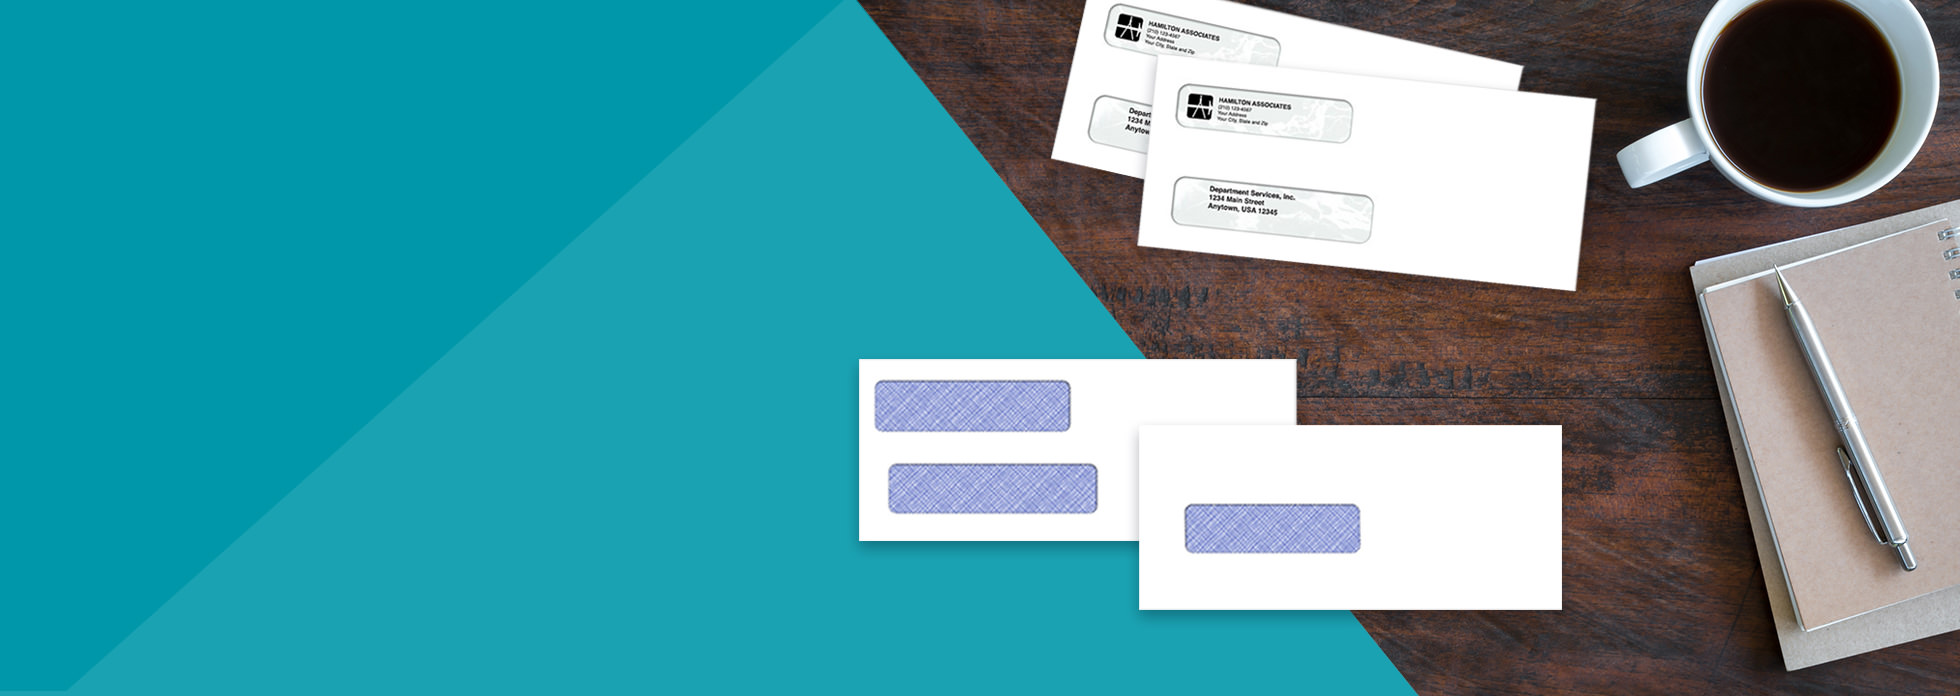 Don't forget security envelopes. Use our compatible security envelopes to keep. Shop Envelopes